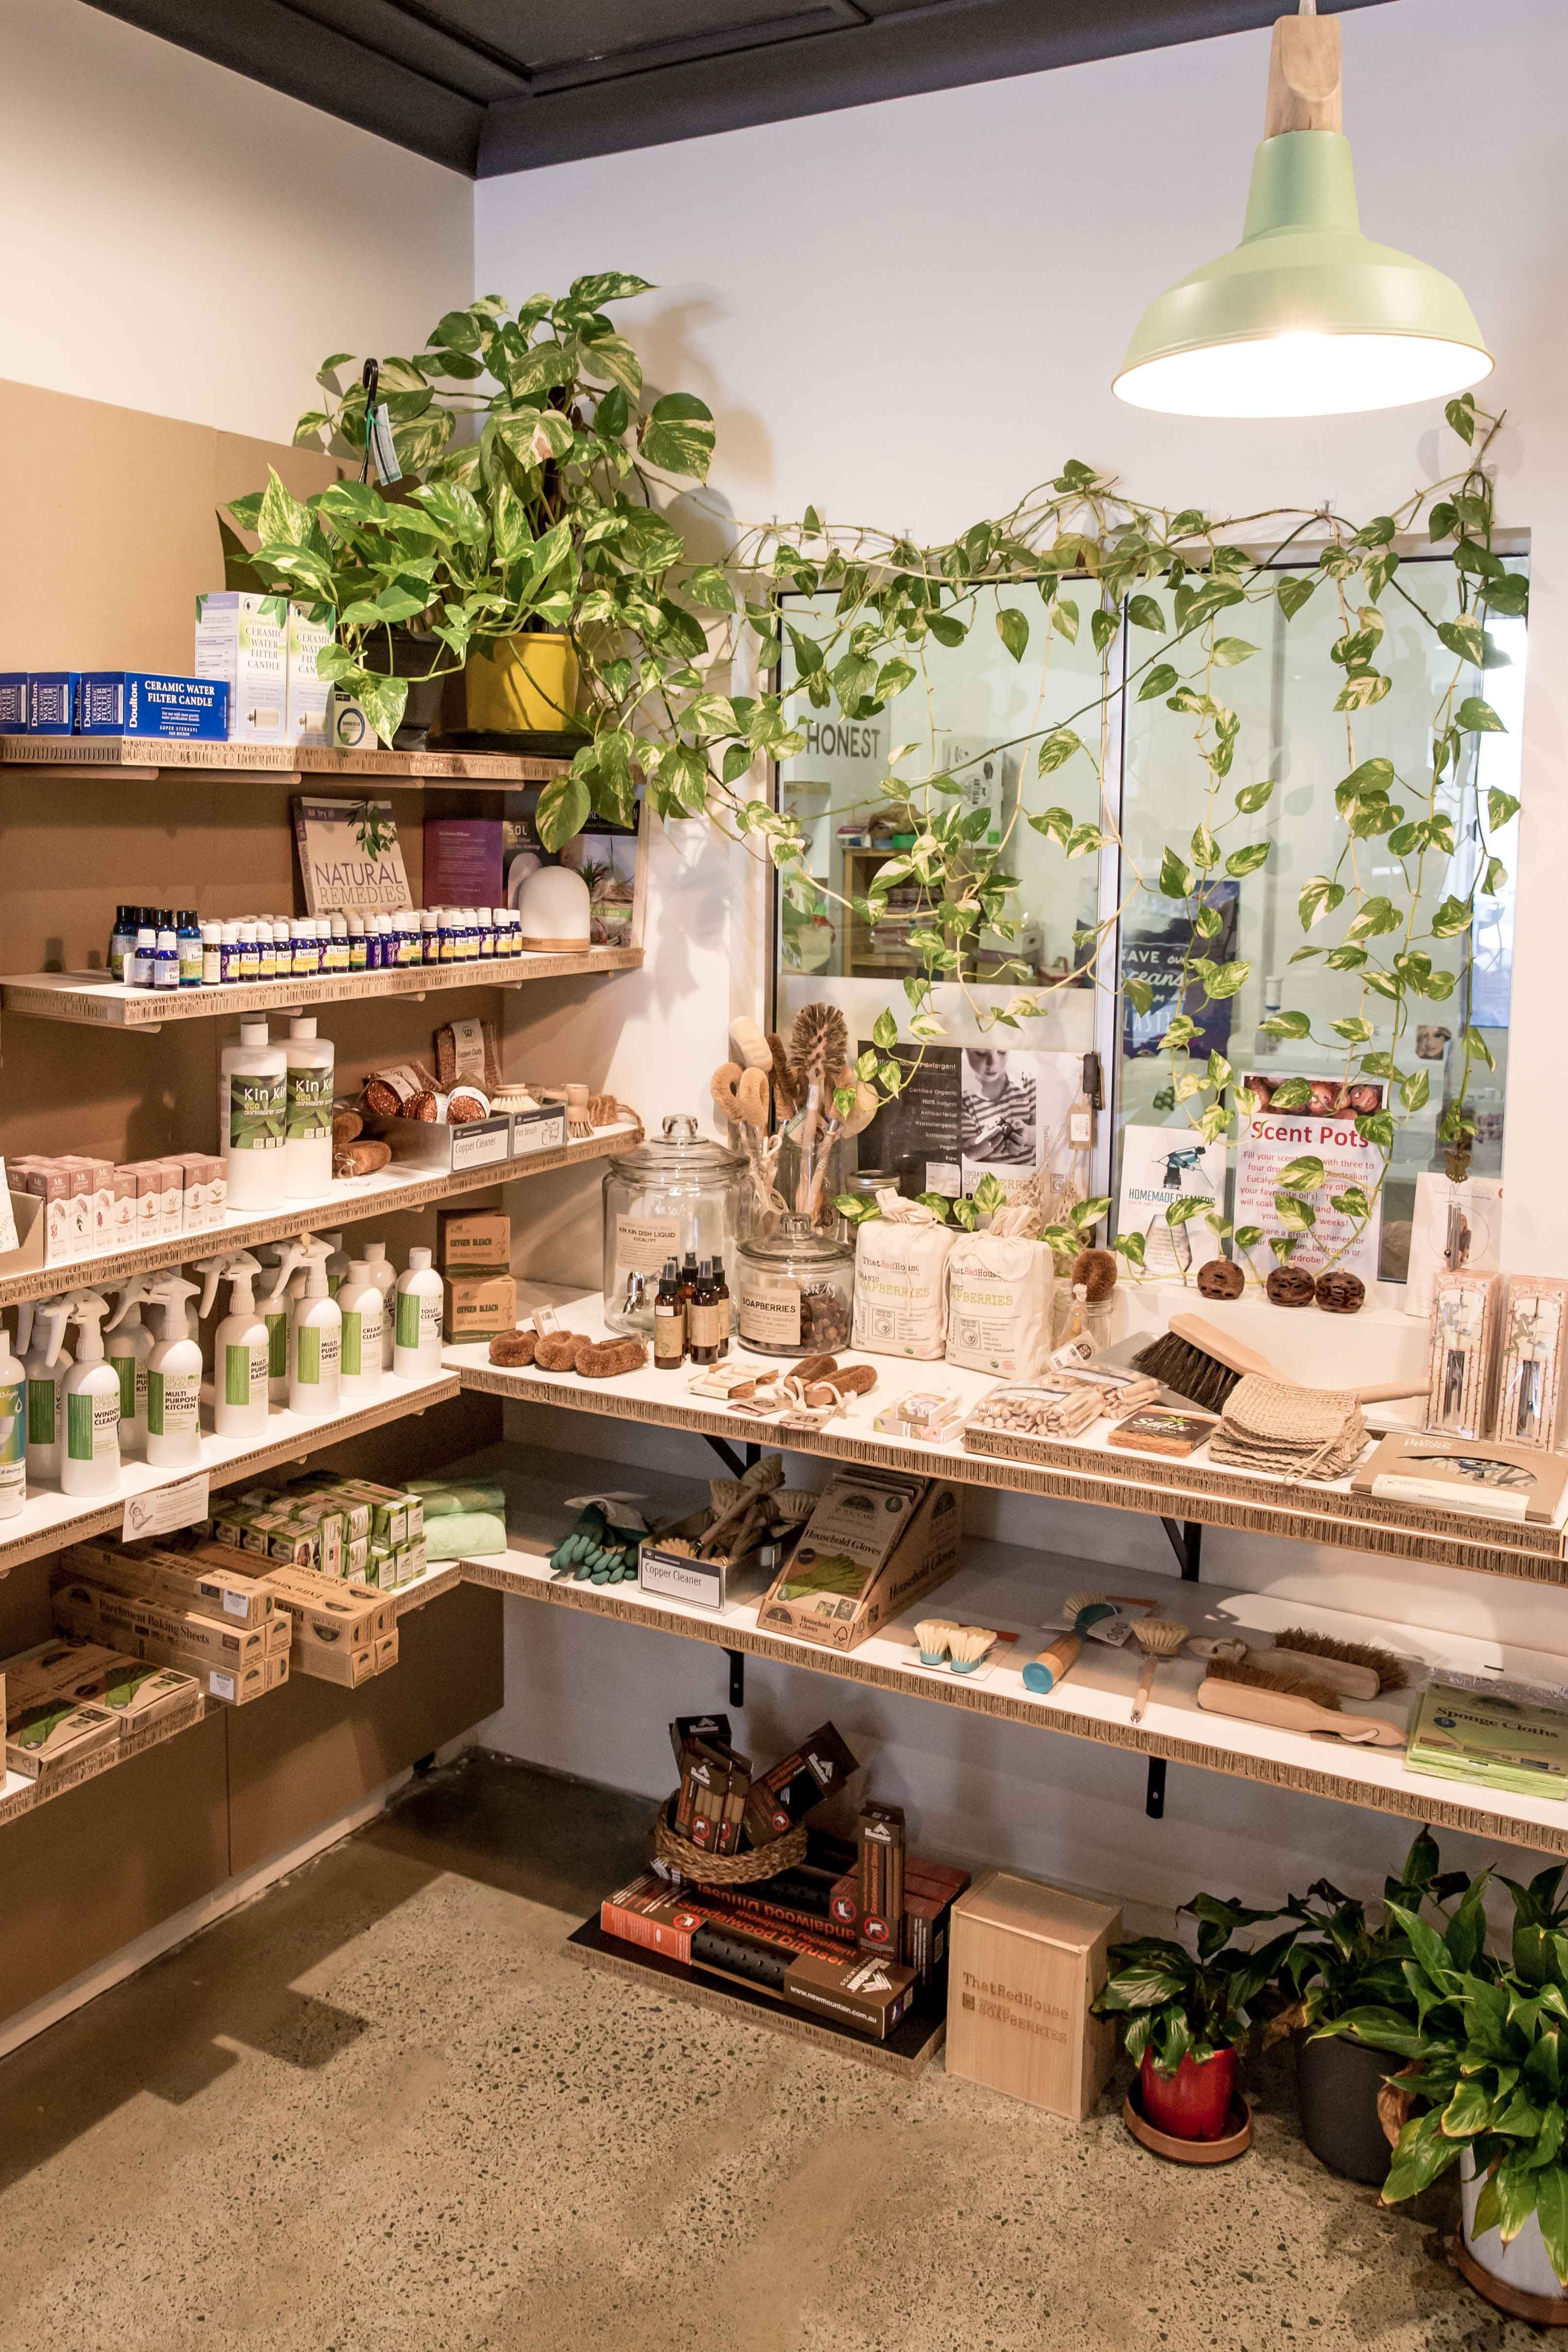 Eco retail store display with plants. Image taken by Kira ...